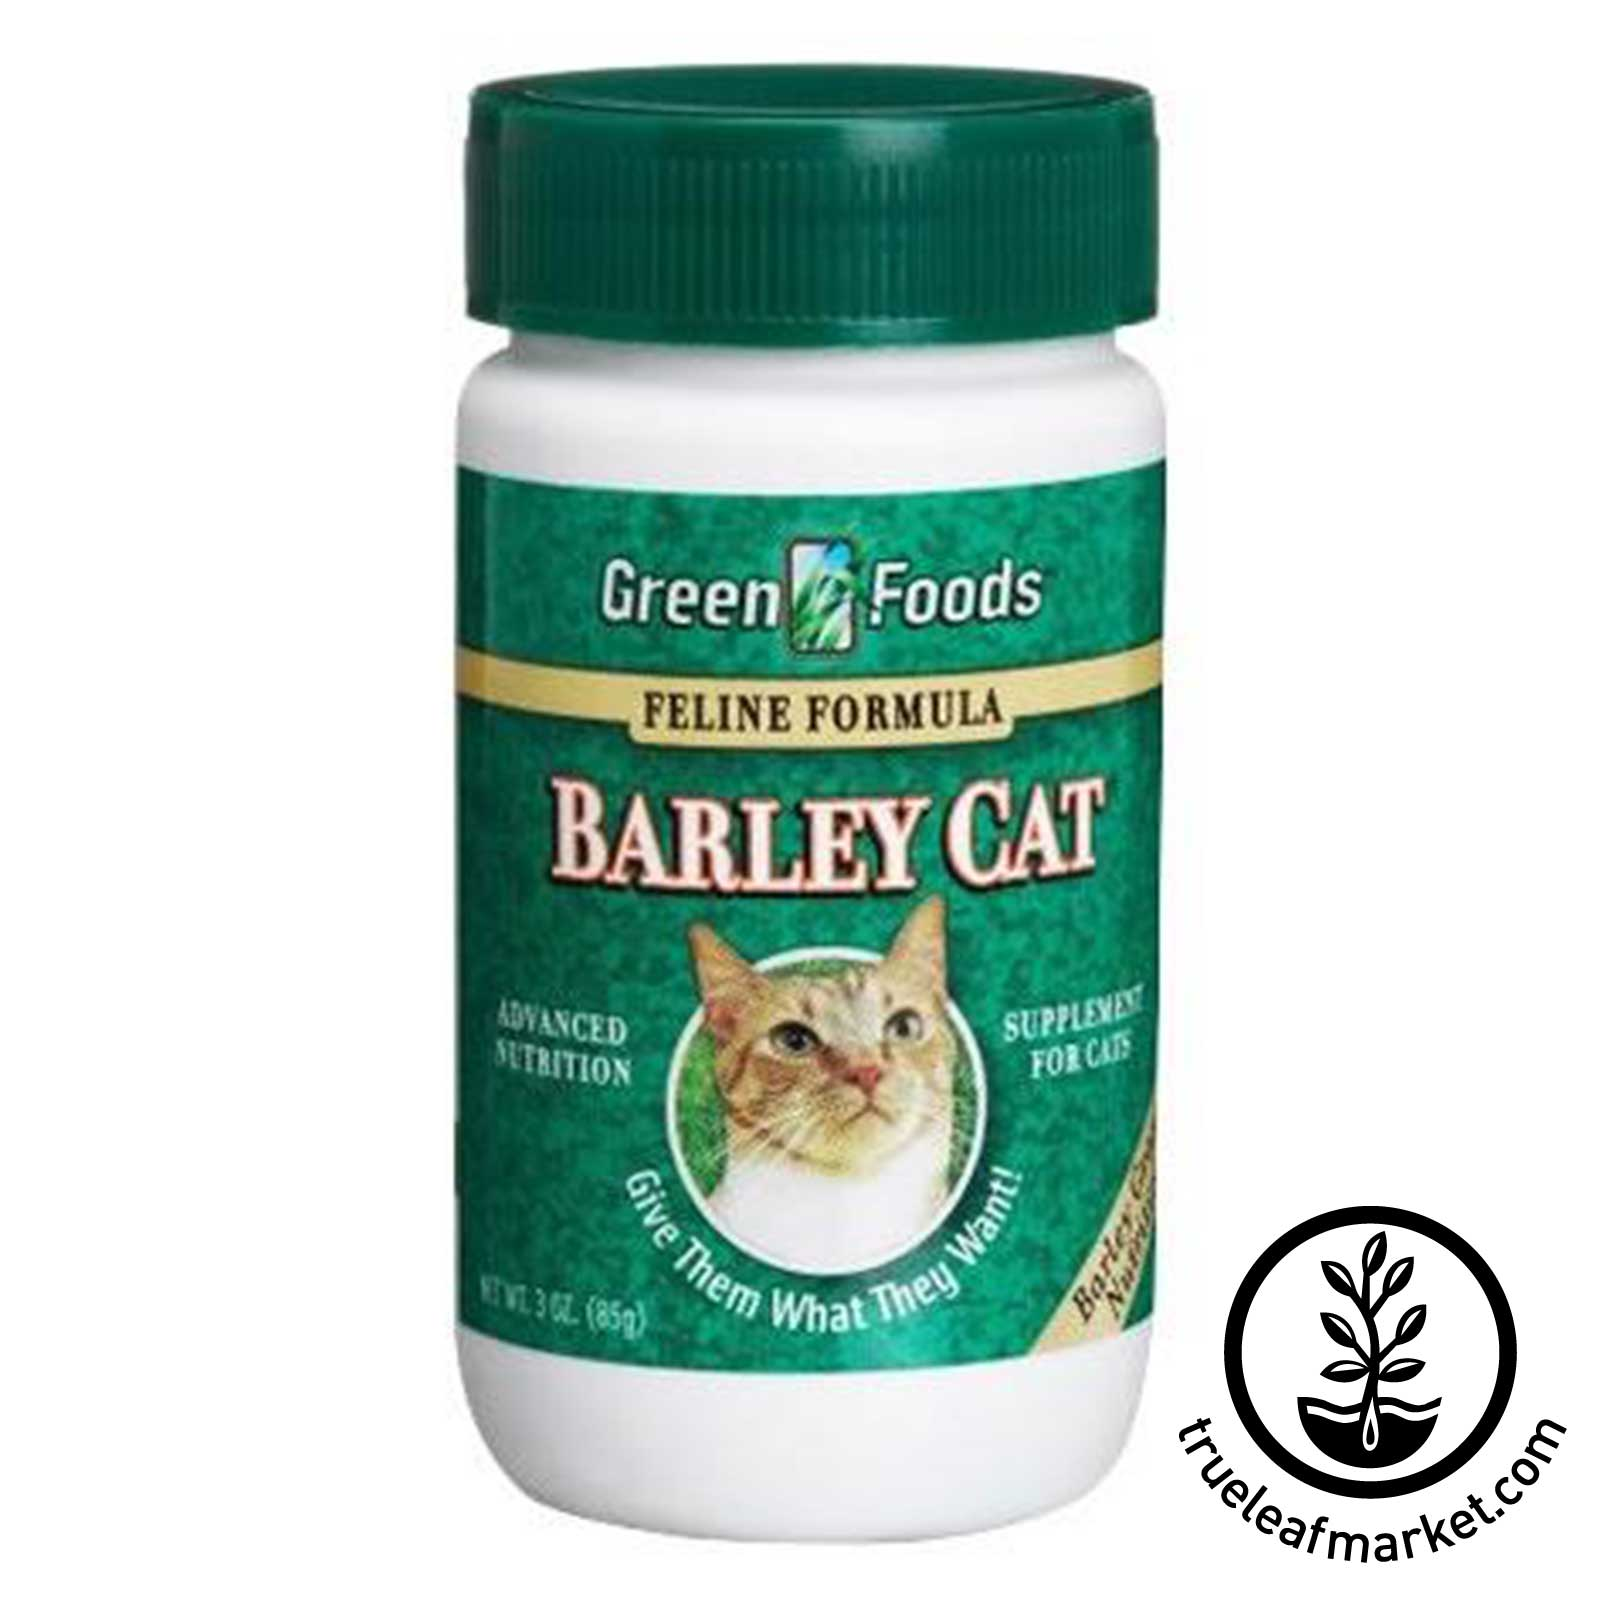 Barley Cat Supplement